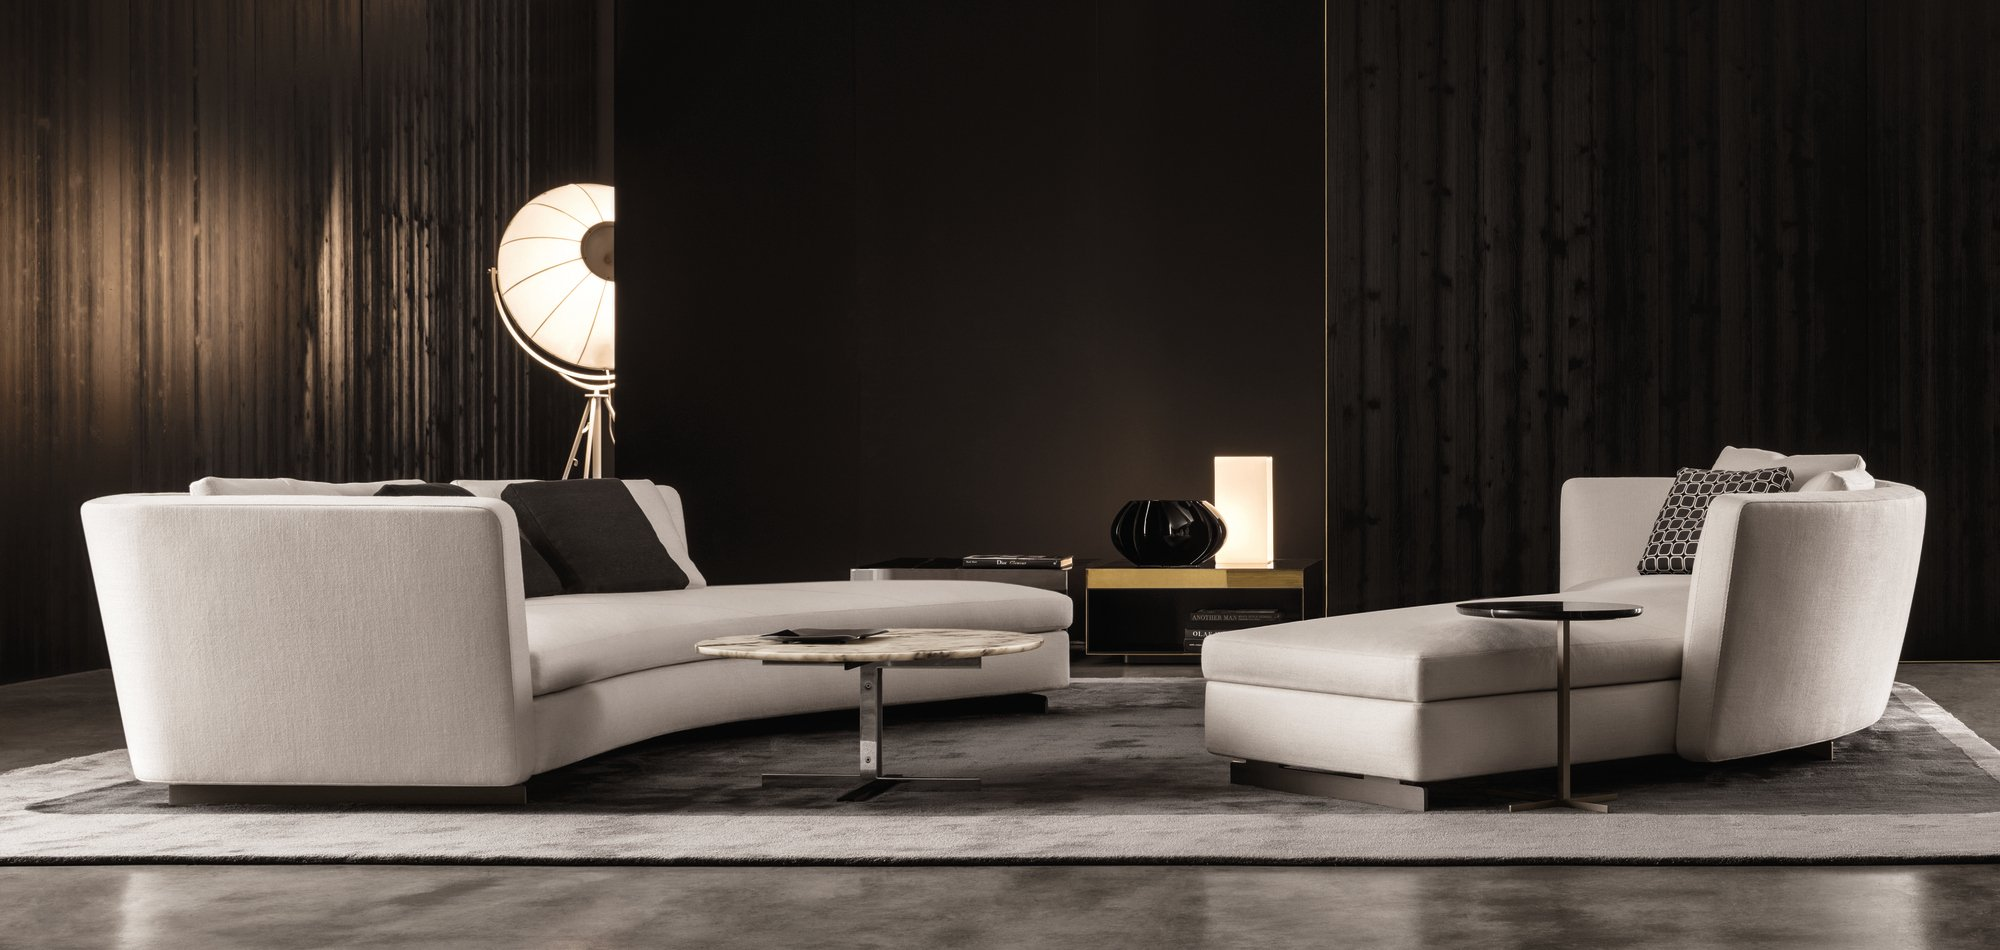 Seymour Sofas by Rodolfo Dordoni for Minotti